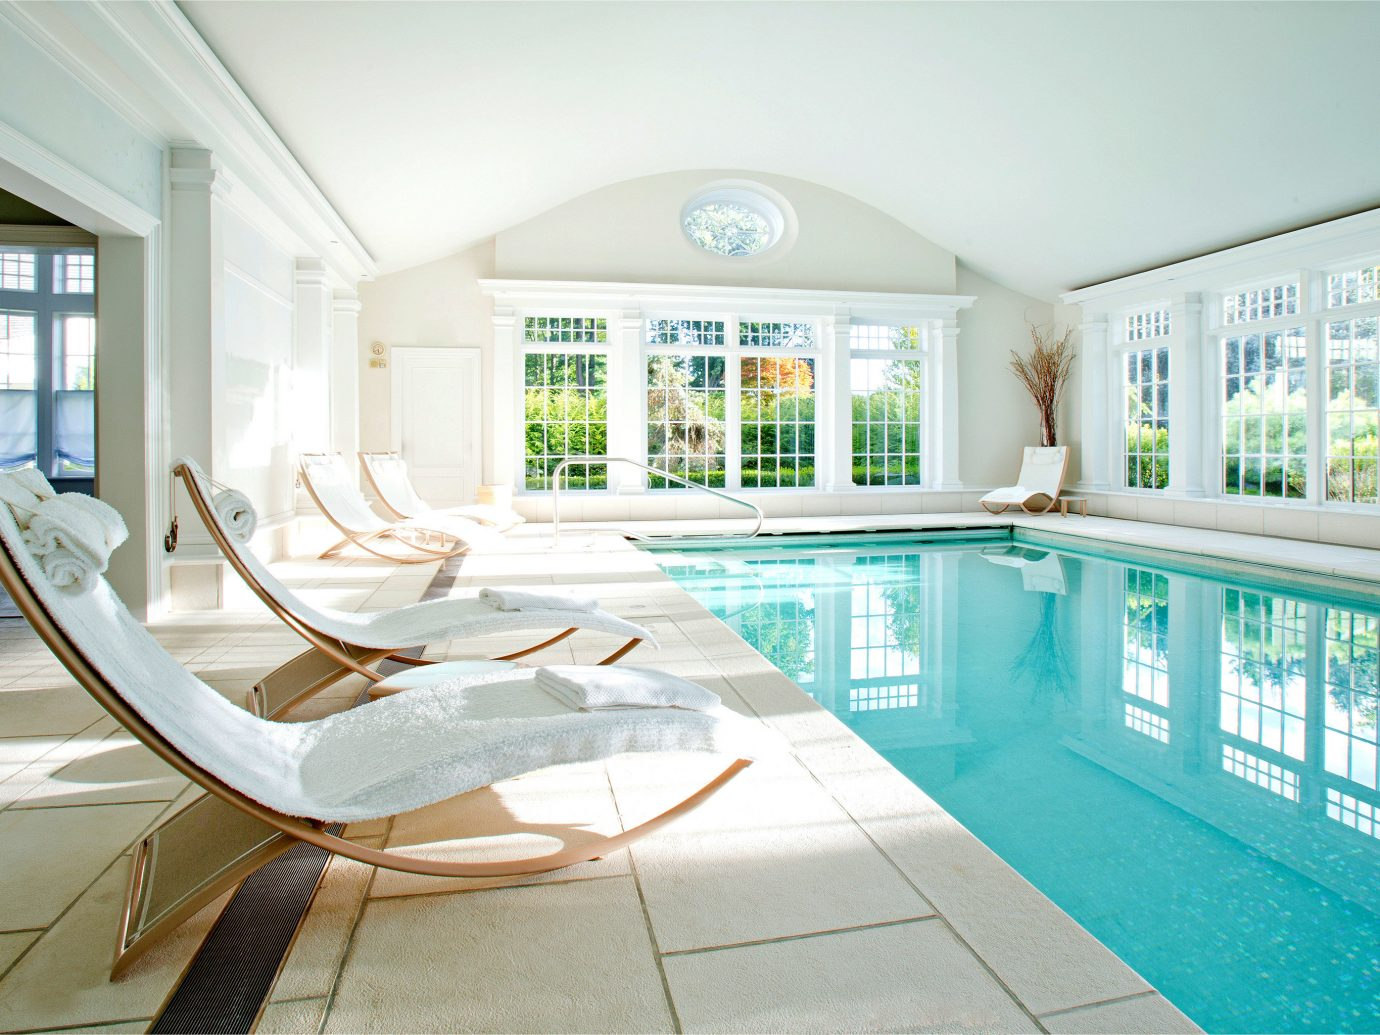 Country Pool Romance Scenic views Trip Ideas Weekend Getaways window indoor floor wall property room estate condominium swimming pool home house mansion interior design living room real estate Design daylighting counter apartment furniture